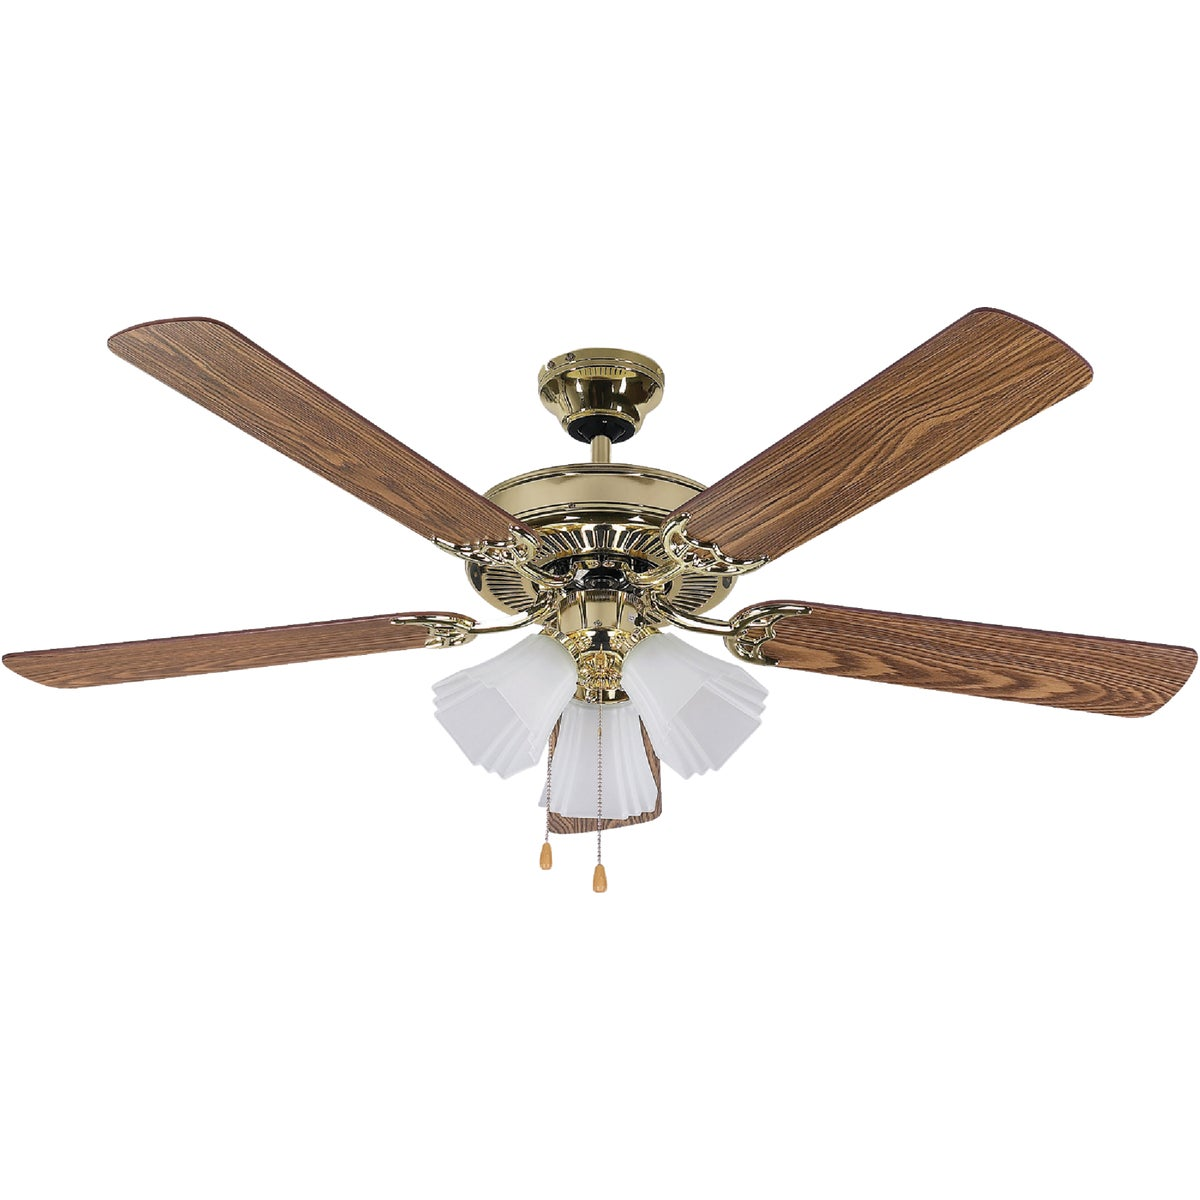 "52"" PB CEILING FAN - CF52SHB5PB by Canarm Gs"